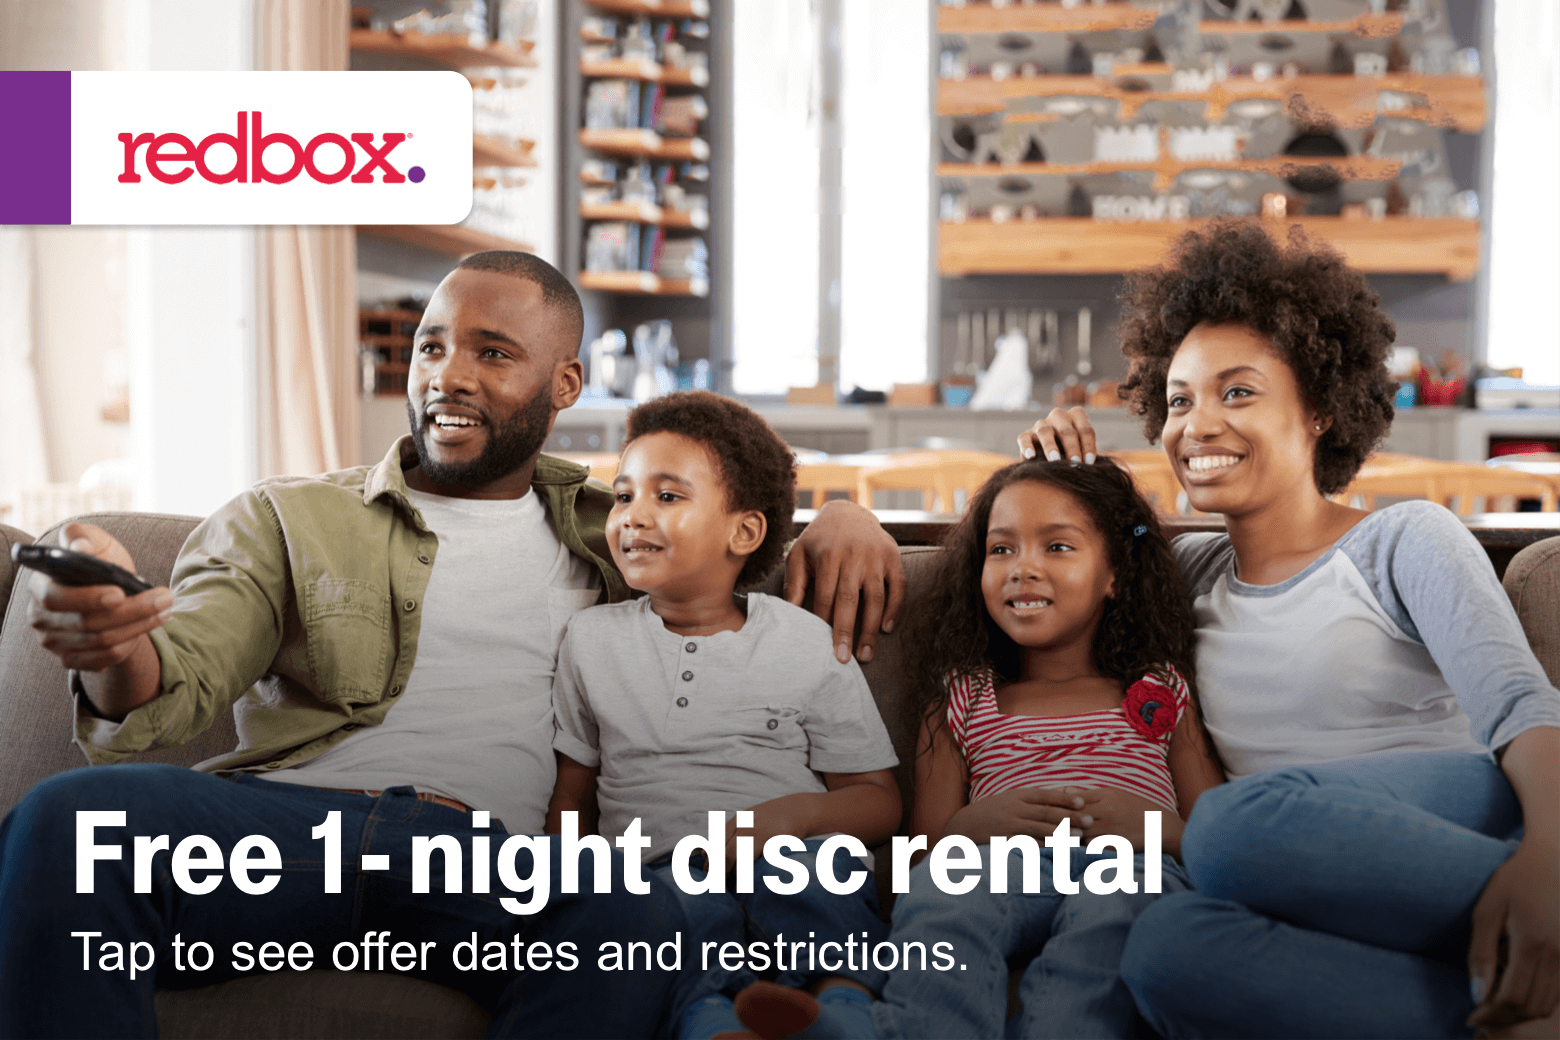 Redbox. Free 1-night disc rental. Tap to see offer dates and restrictions